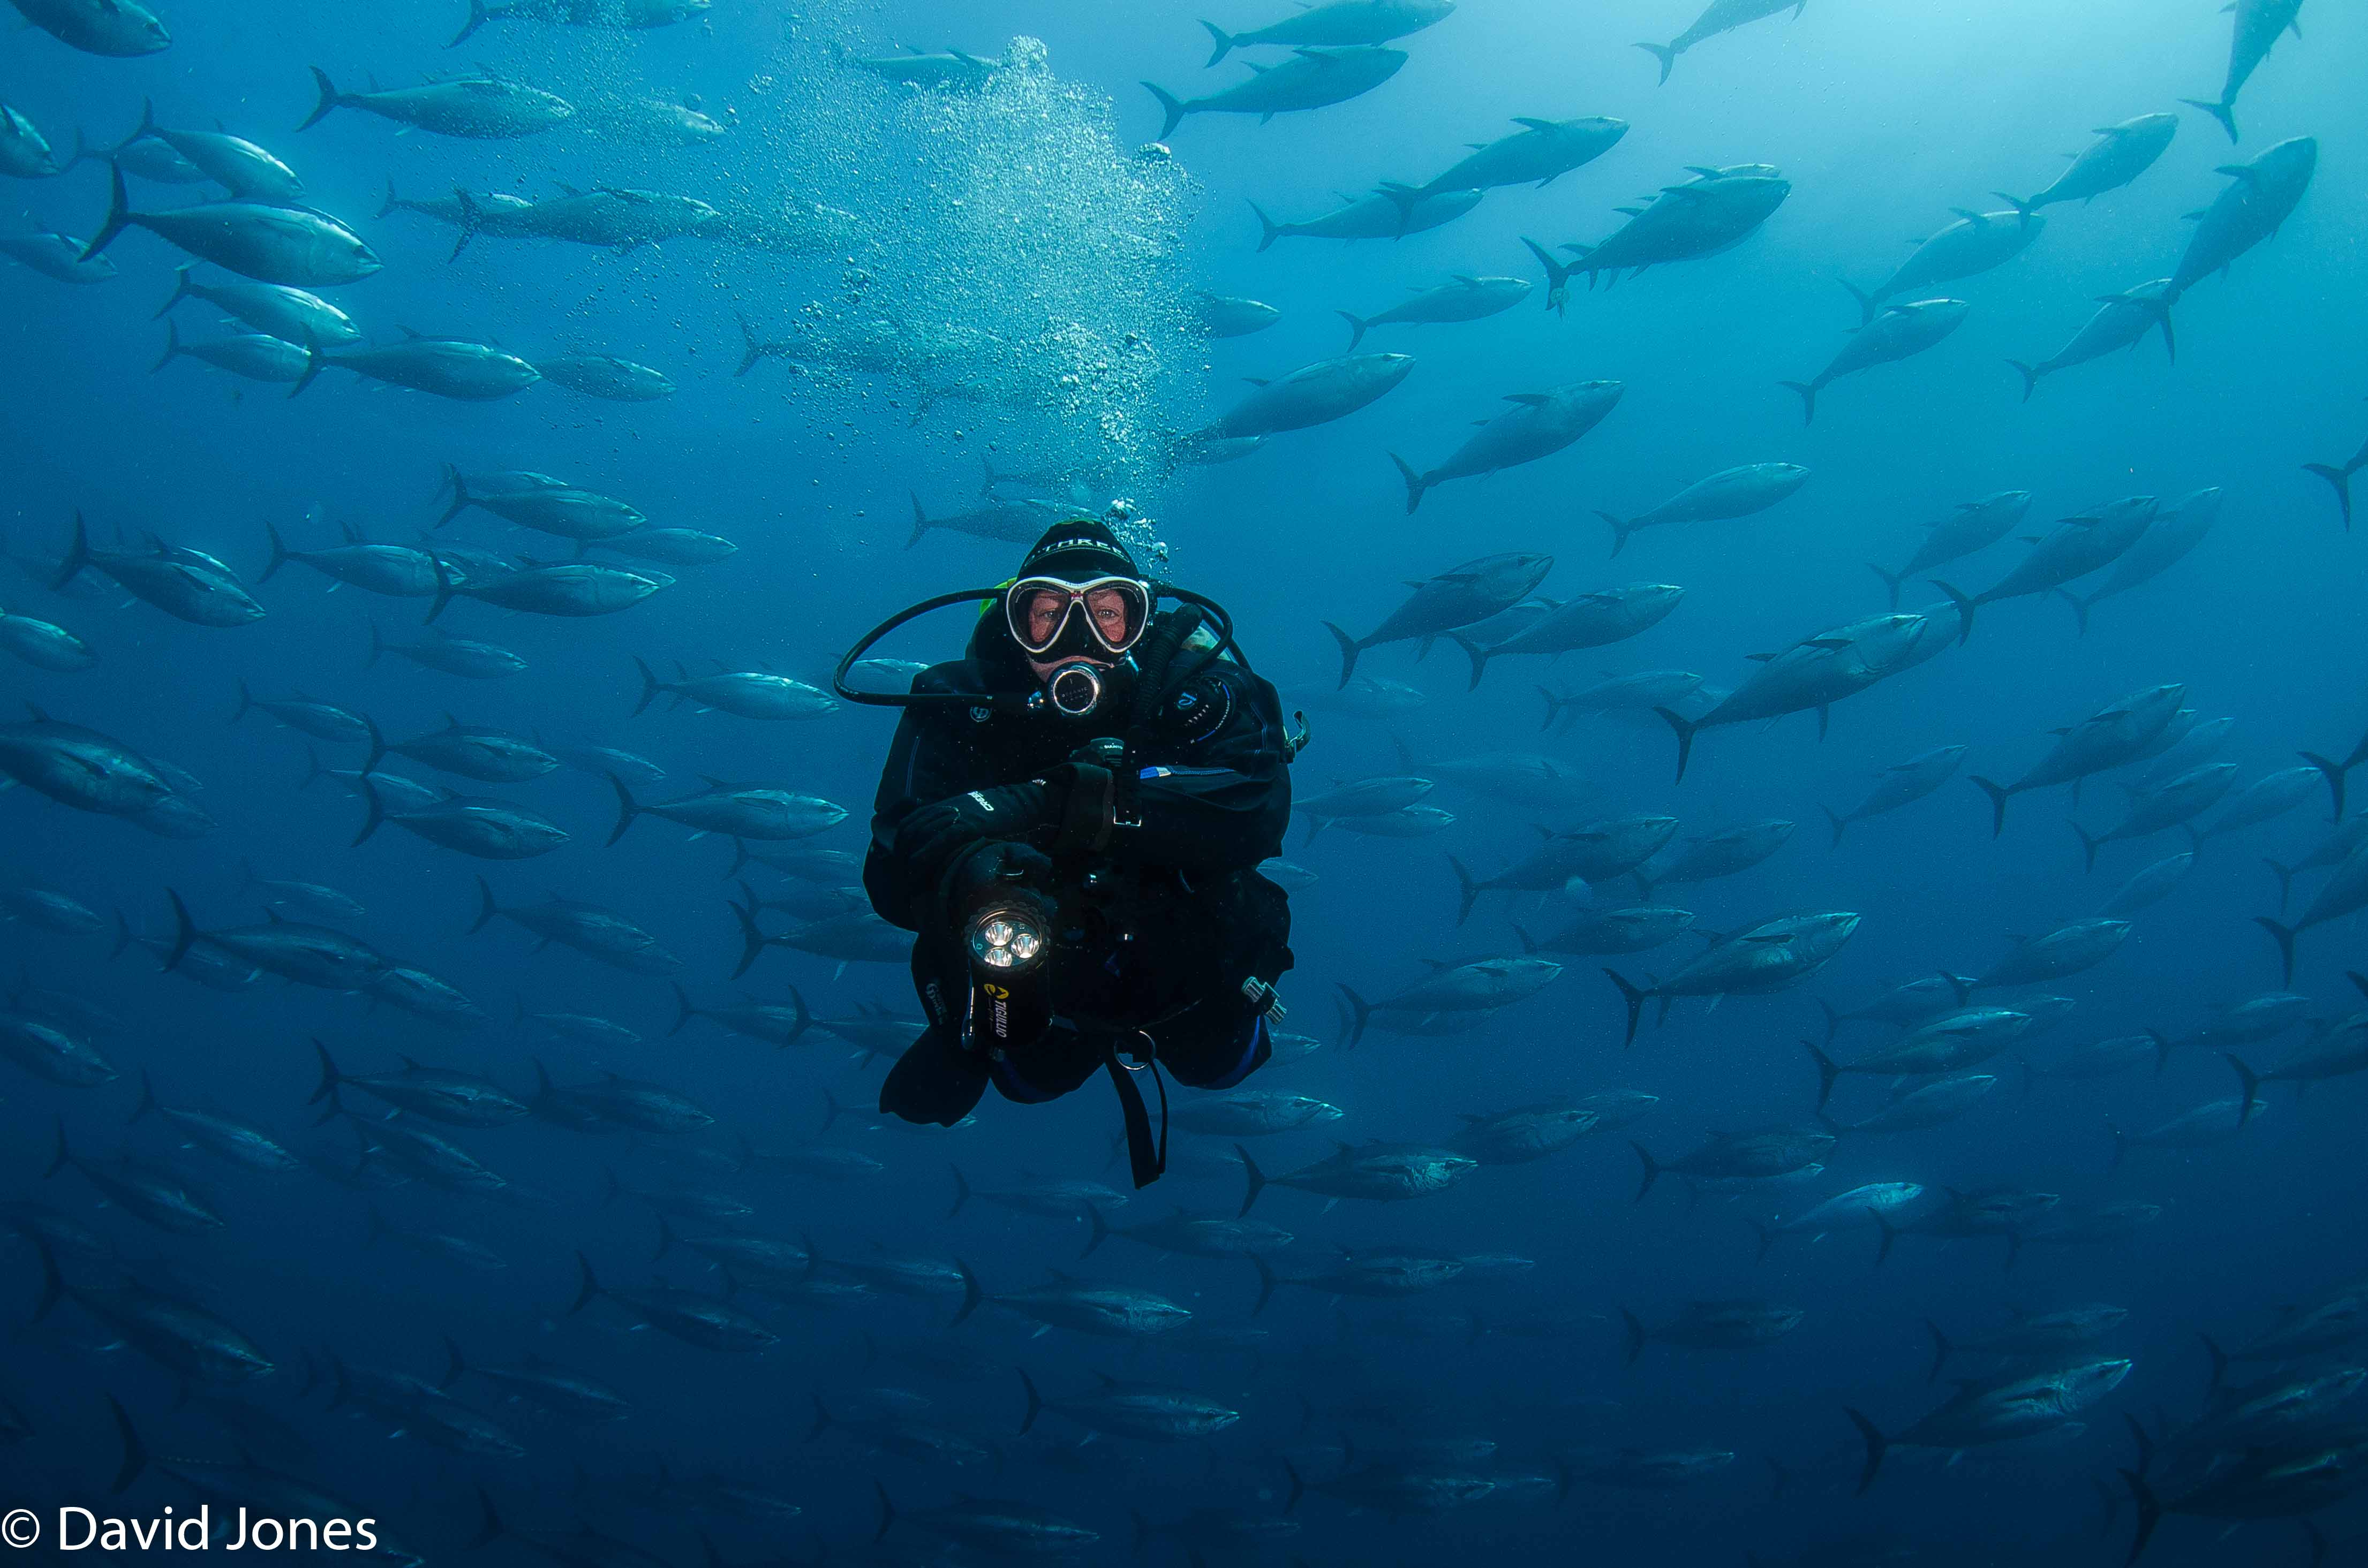 diver and bluefin shoal swirling